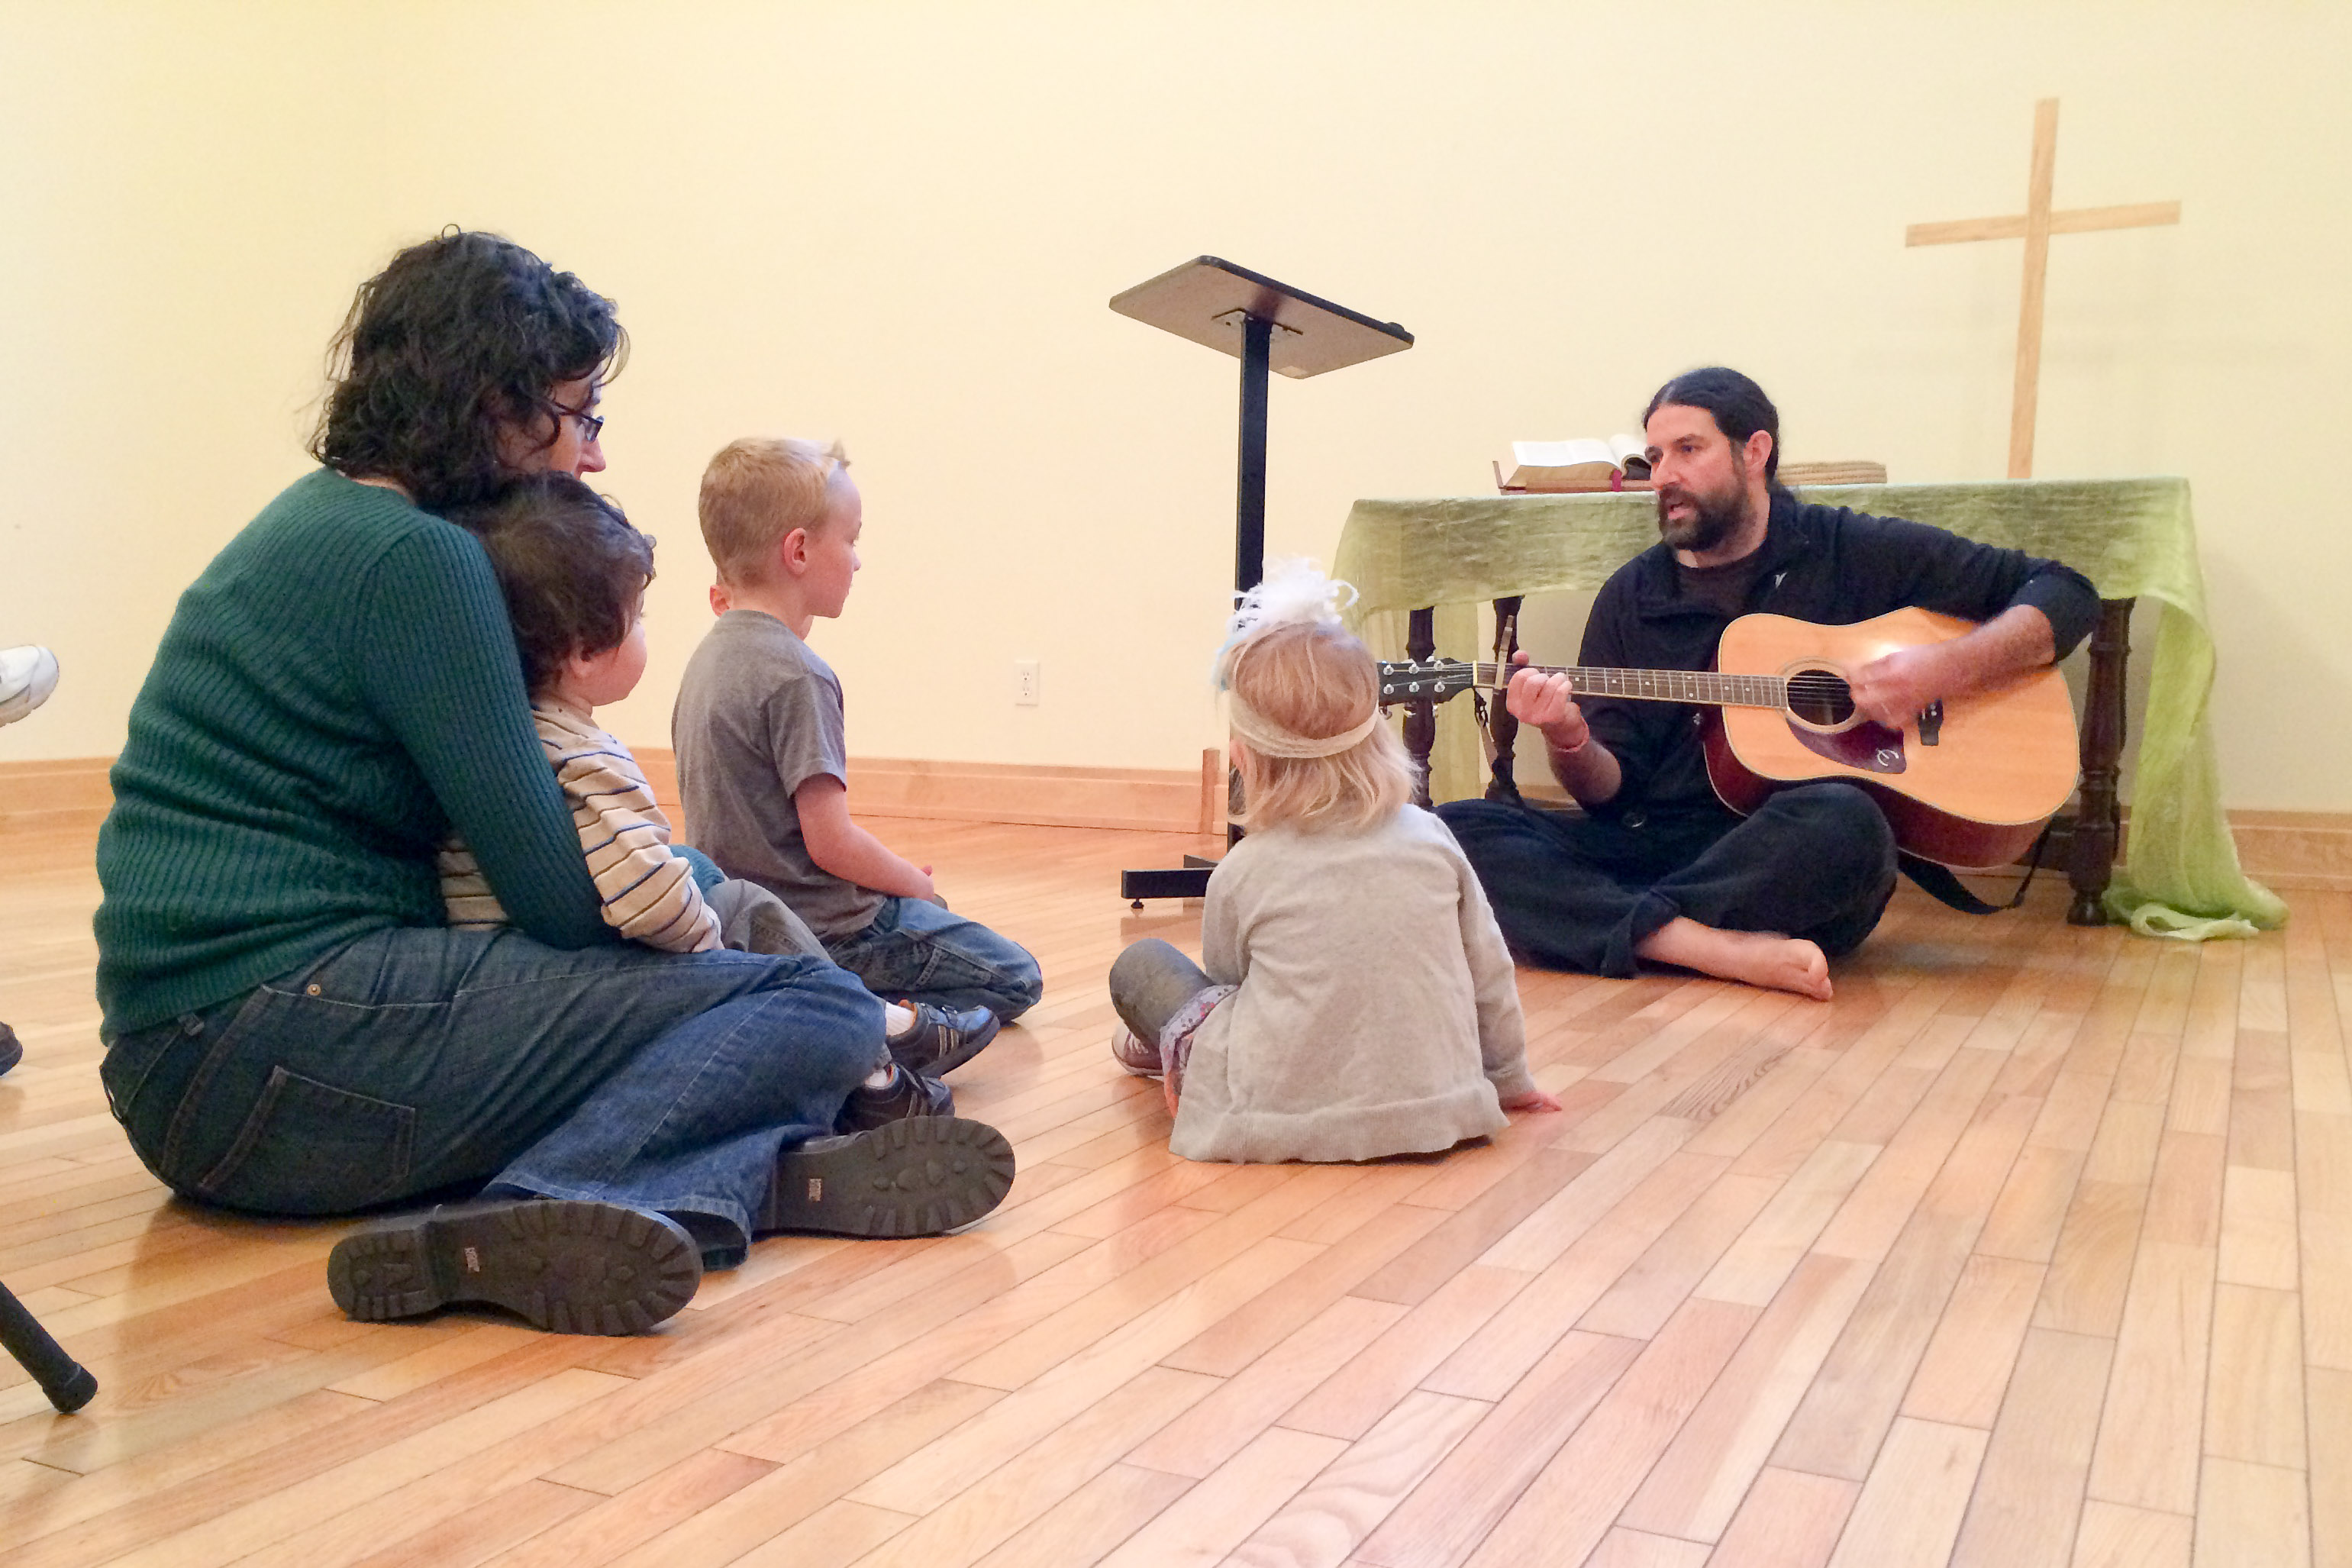 Story time with guitar